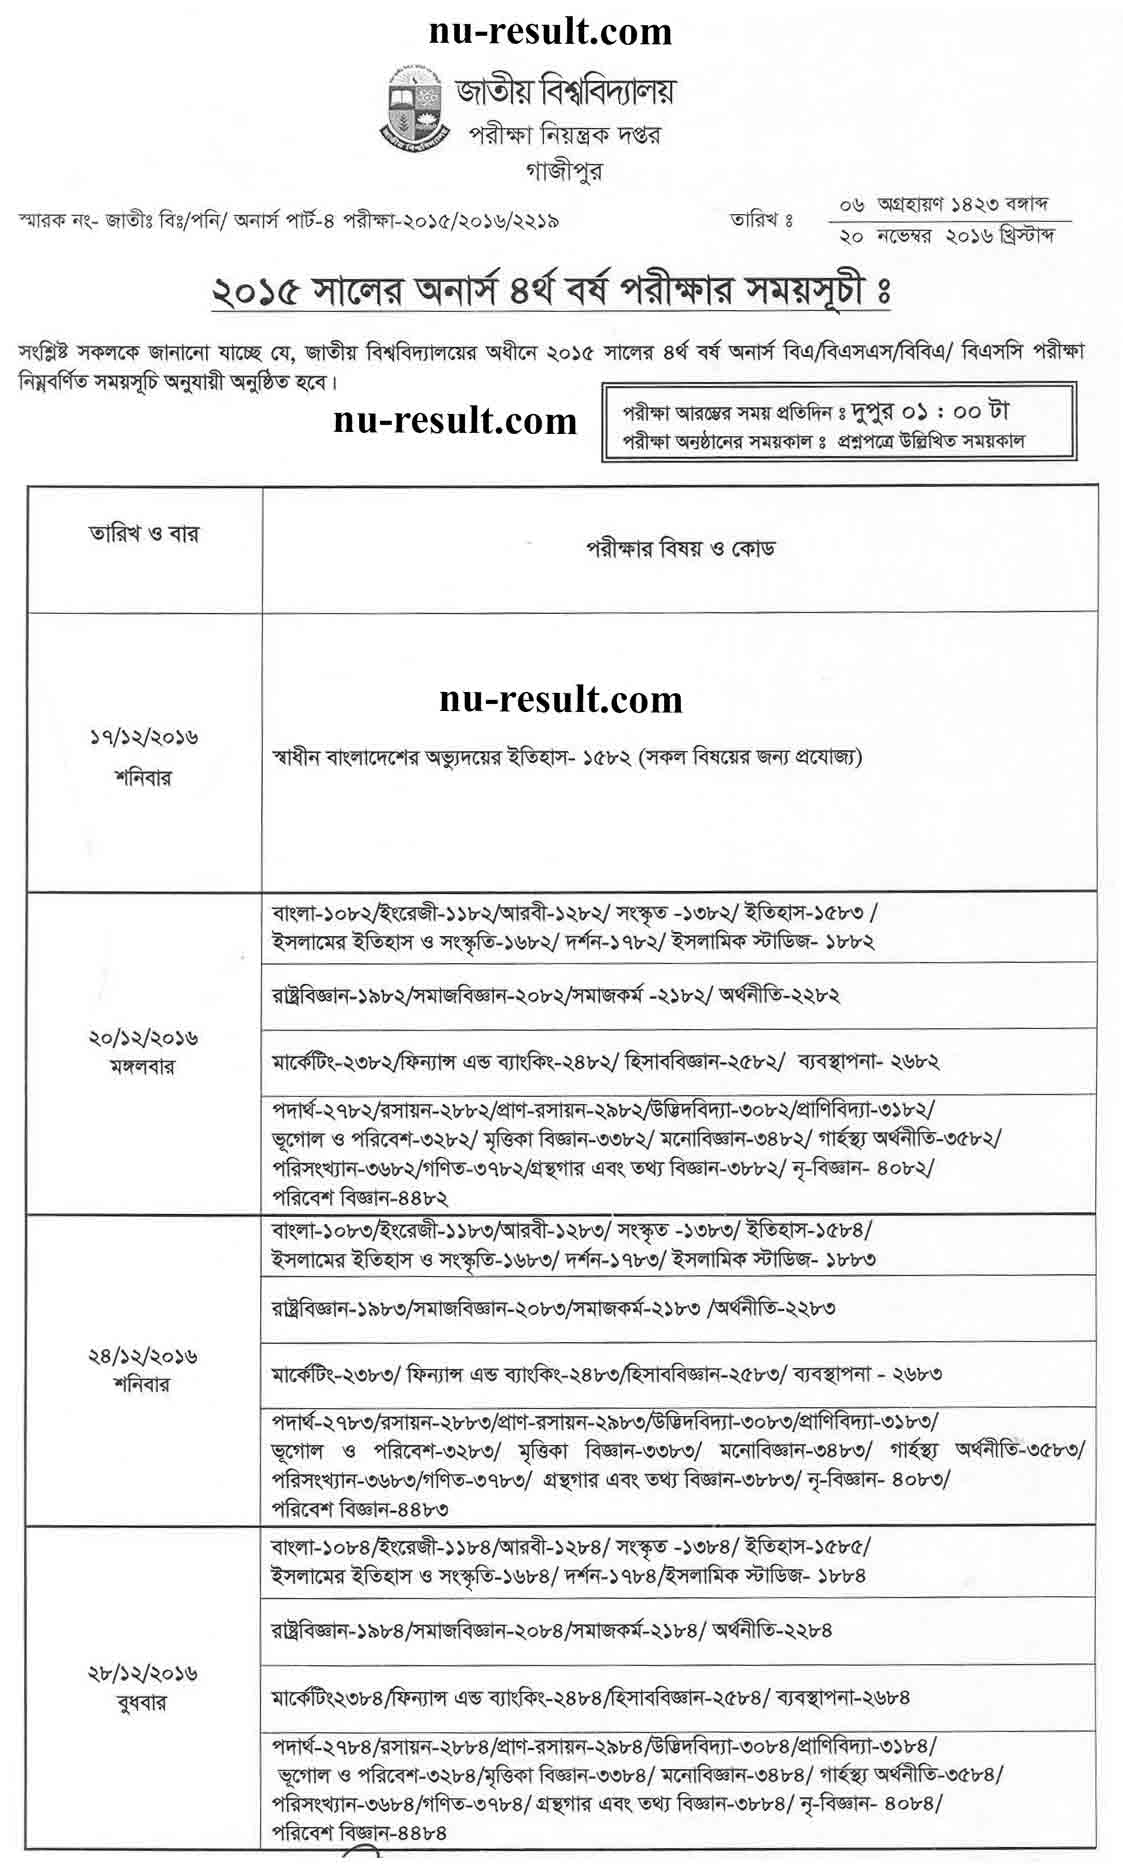 National University Honors 4th year exam routine 2015 nu.edu.bd/routines